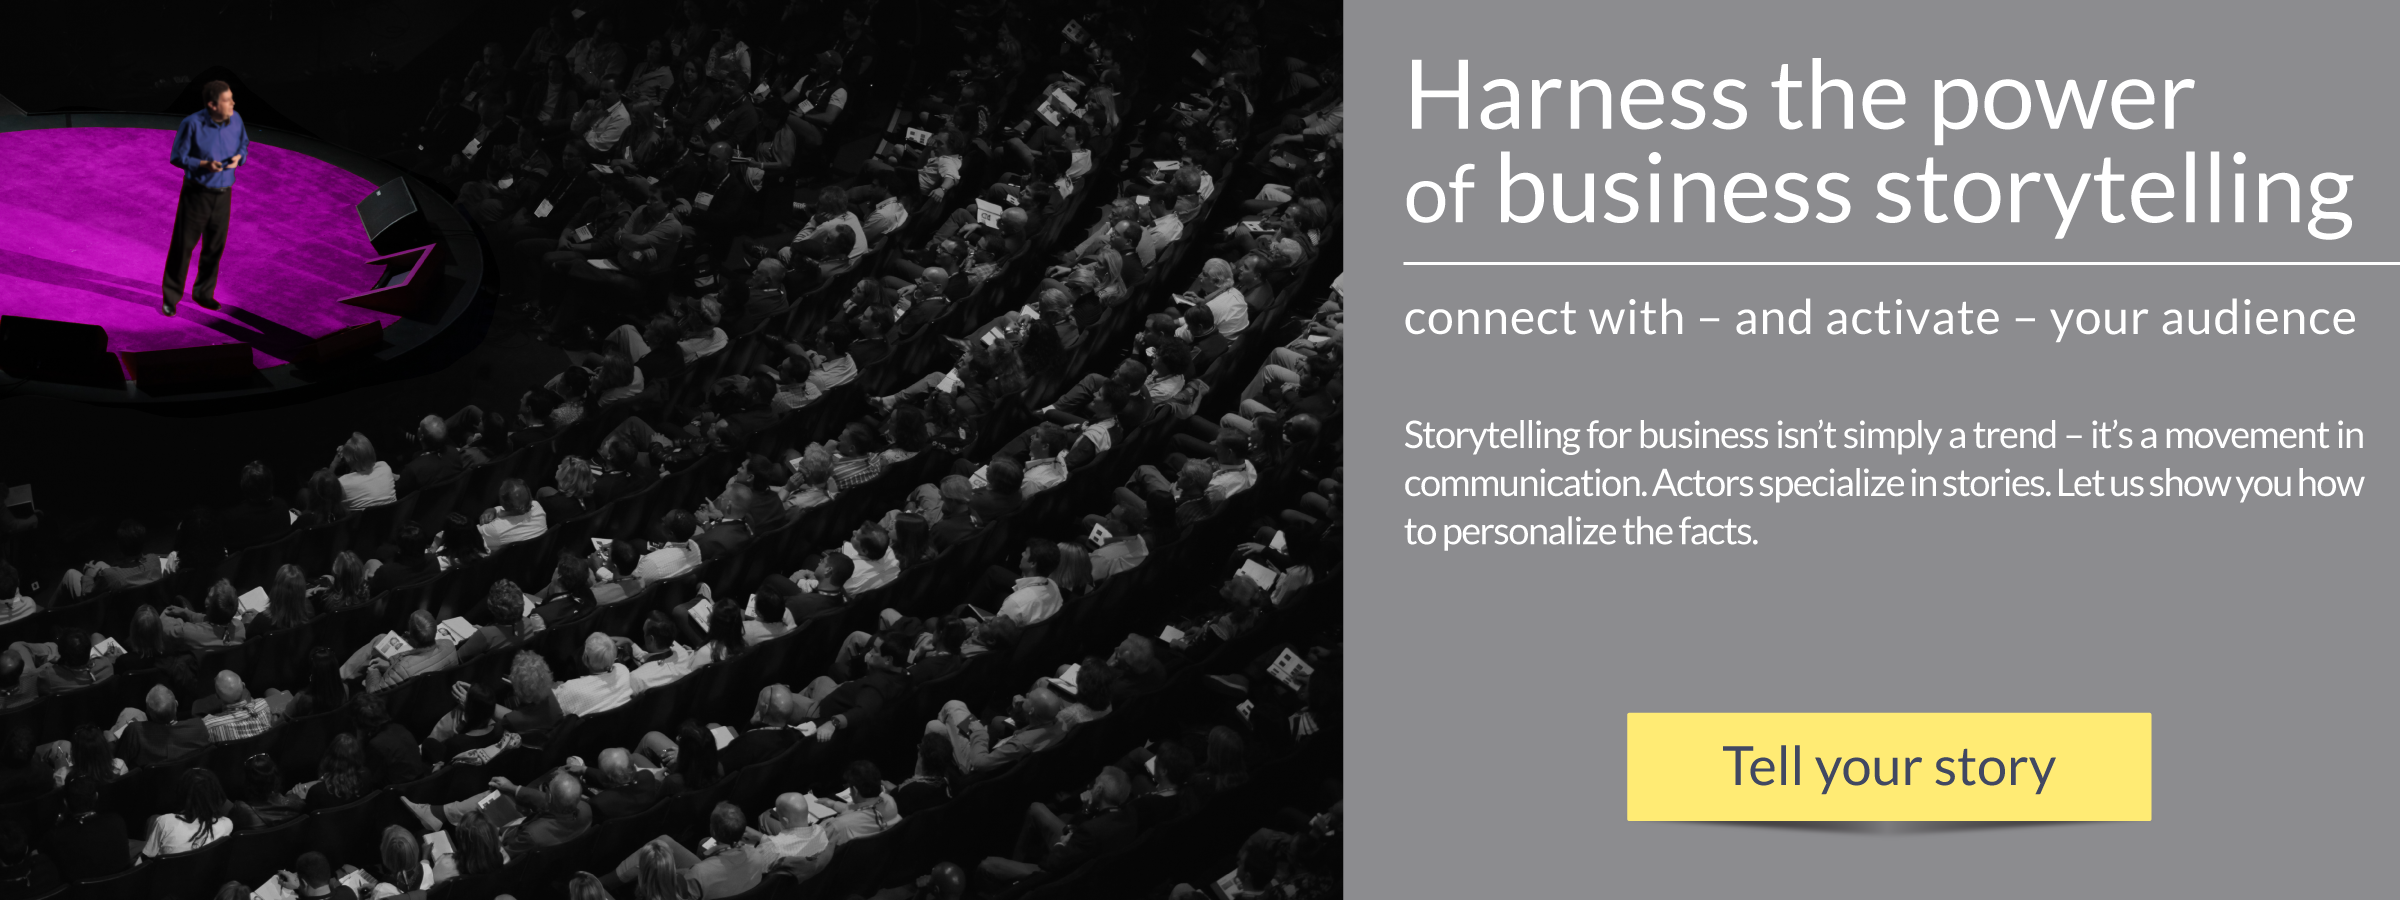 storytelling for business